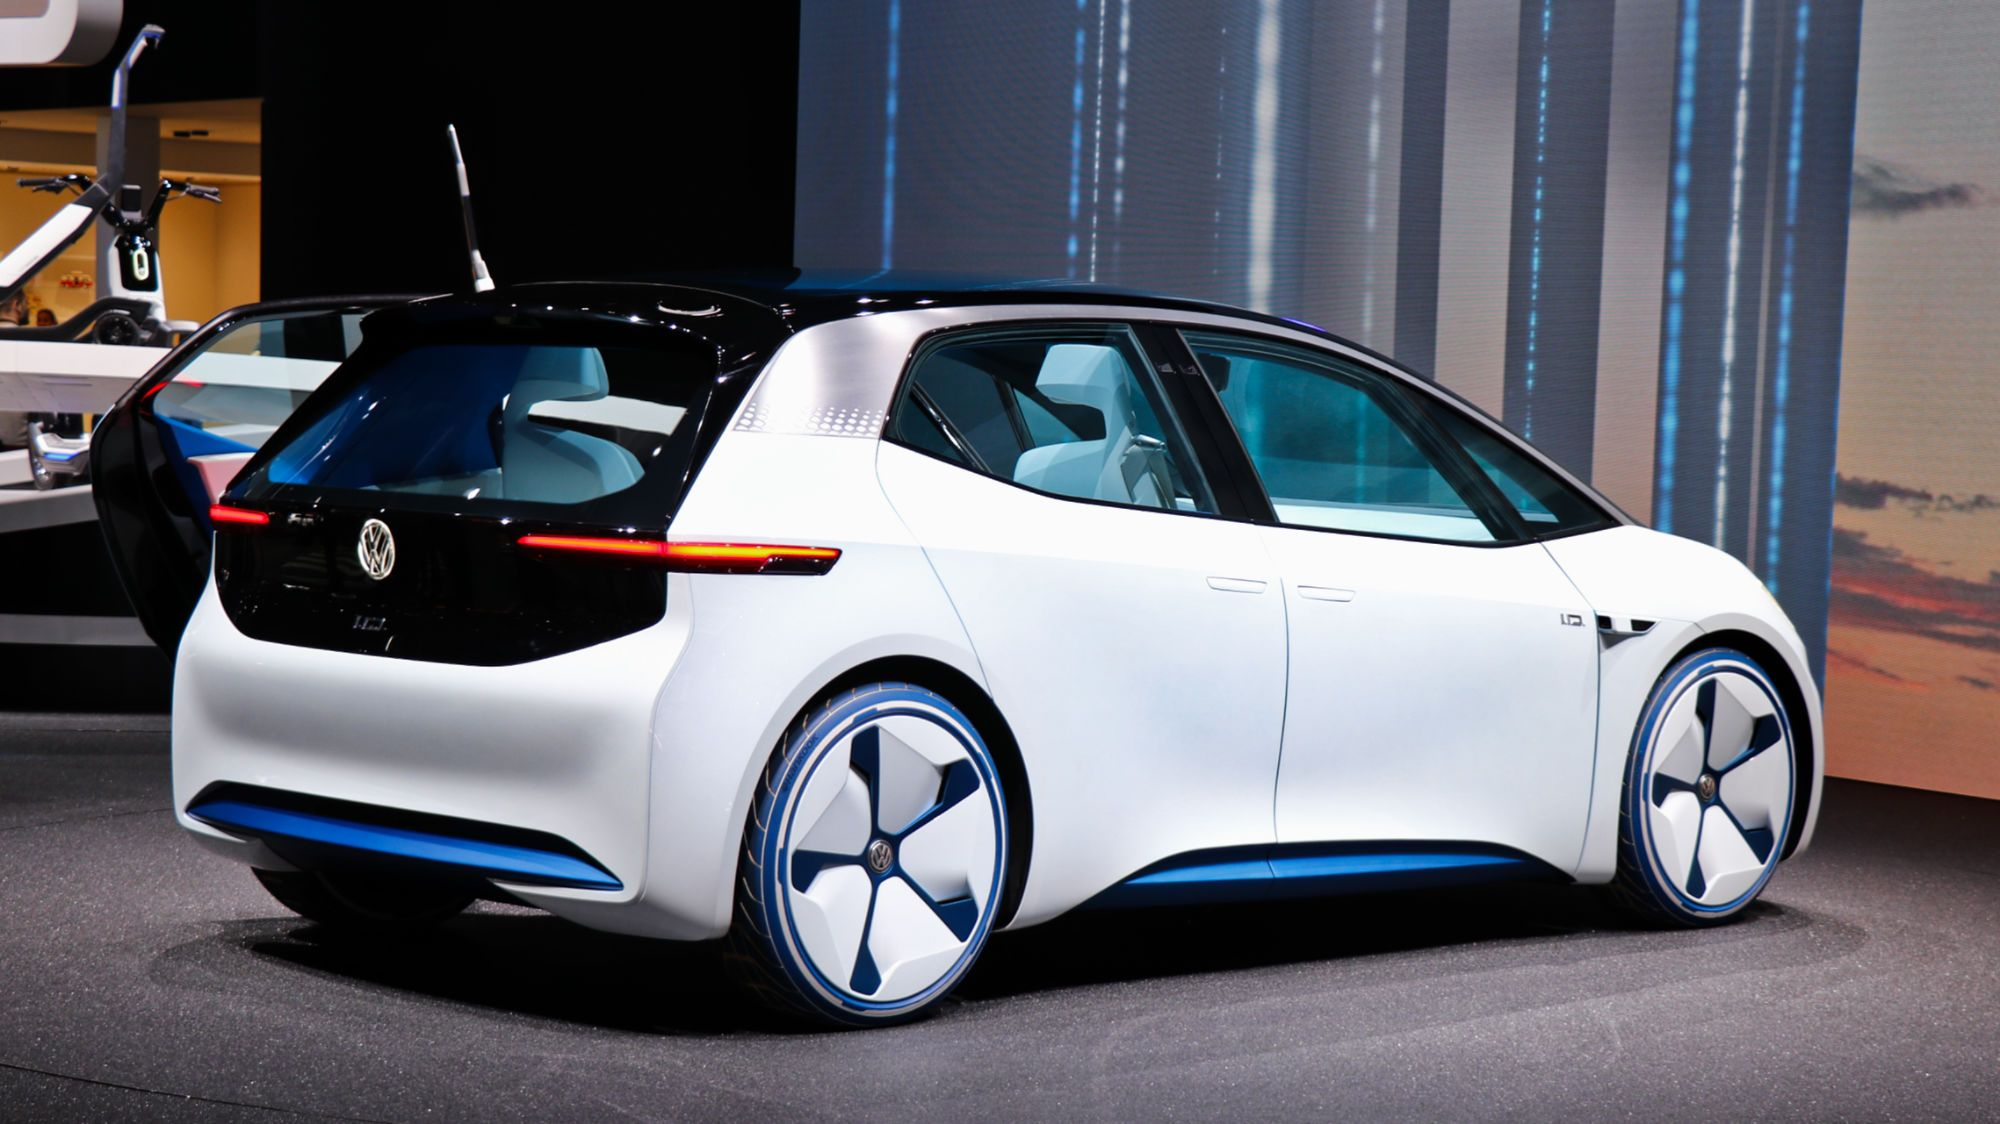 2019 (January) Germany BestSelling Electric Car Brands